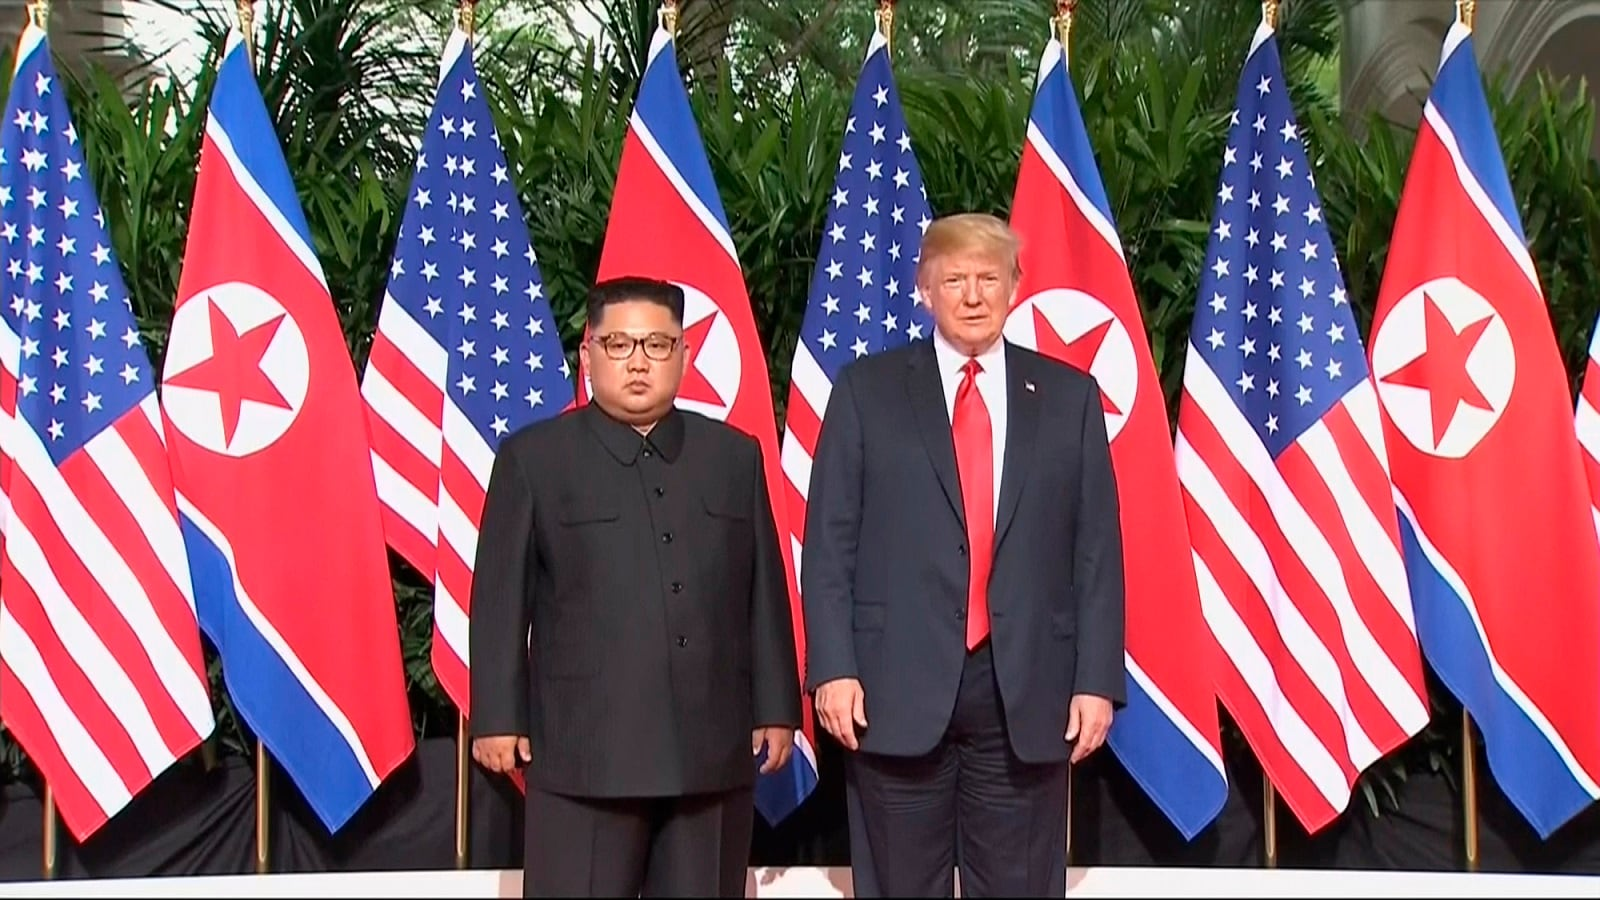 Trump and Kim pose together ahead of their meeting at Capella Hotel in Singapore. (Host Broadcaster Mediacorp Pte Ltd via AP)